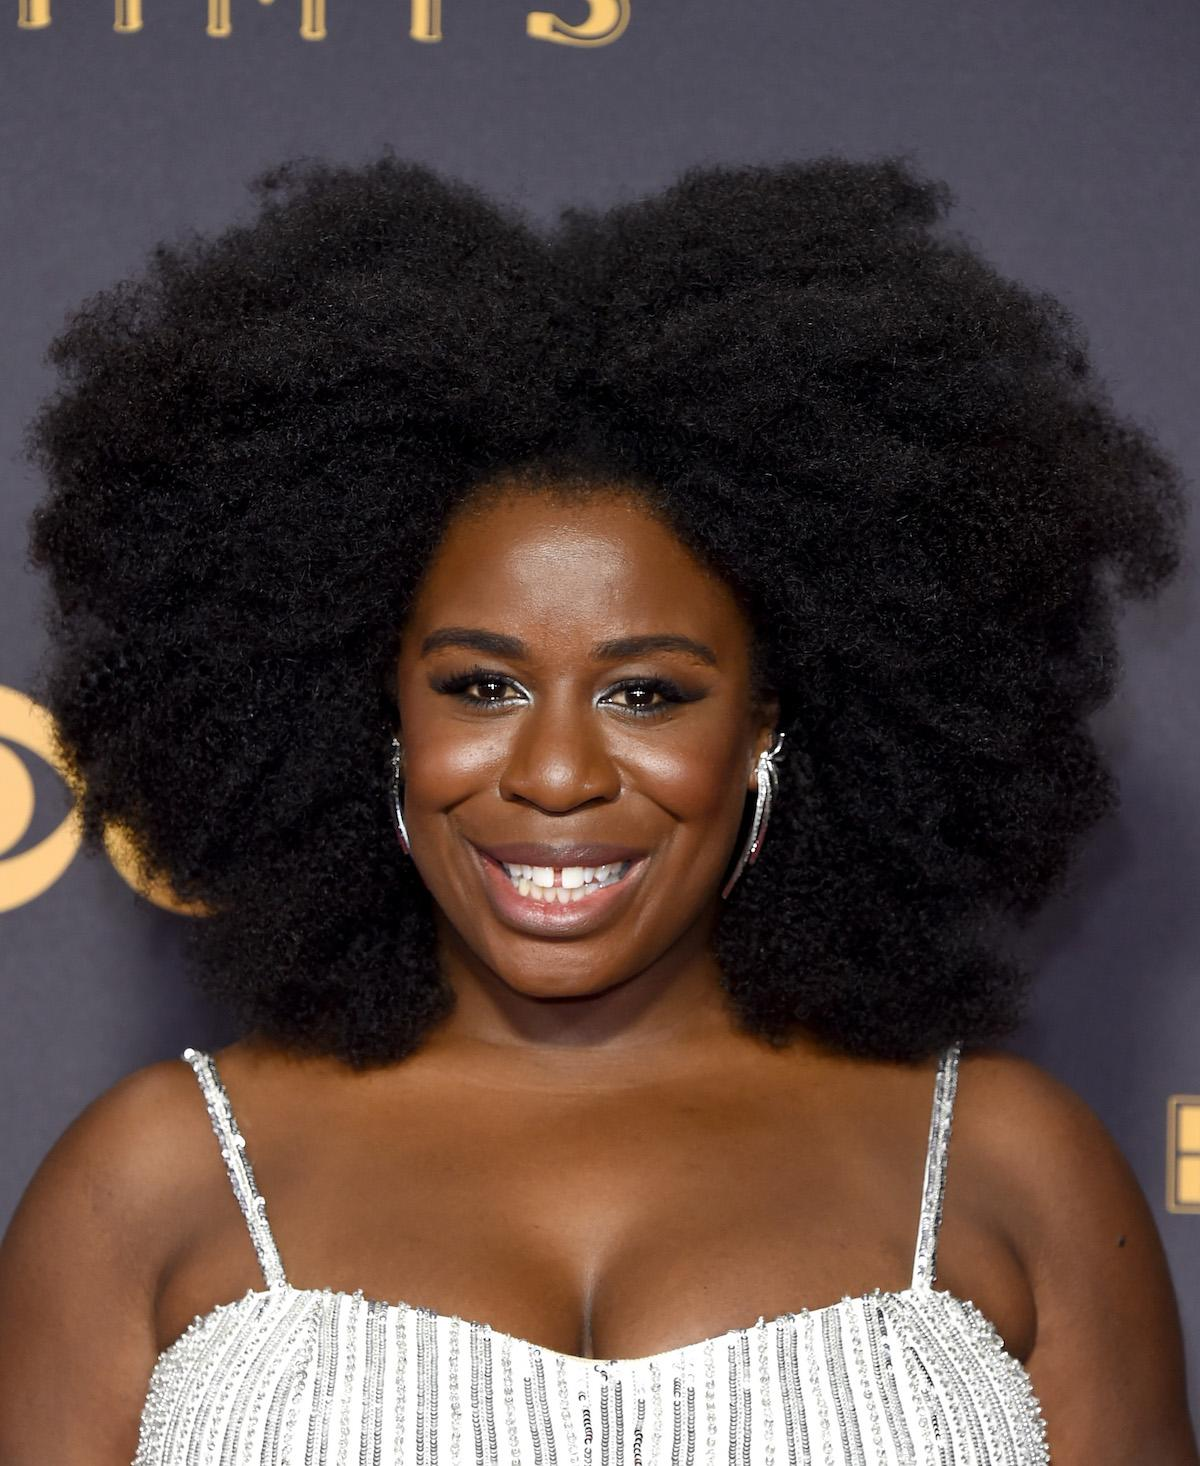 The Best Natural Hair Moments At The 2017 Emmy Awards